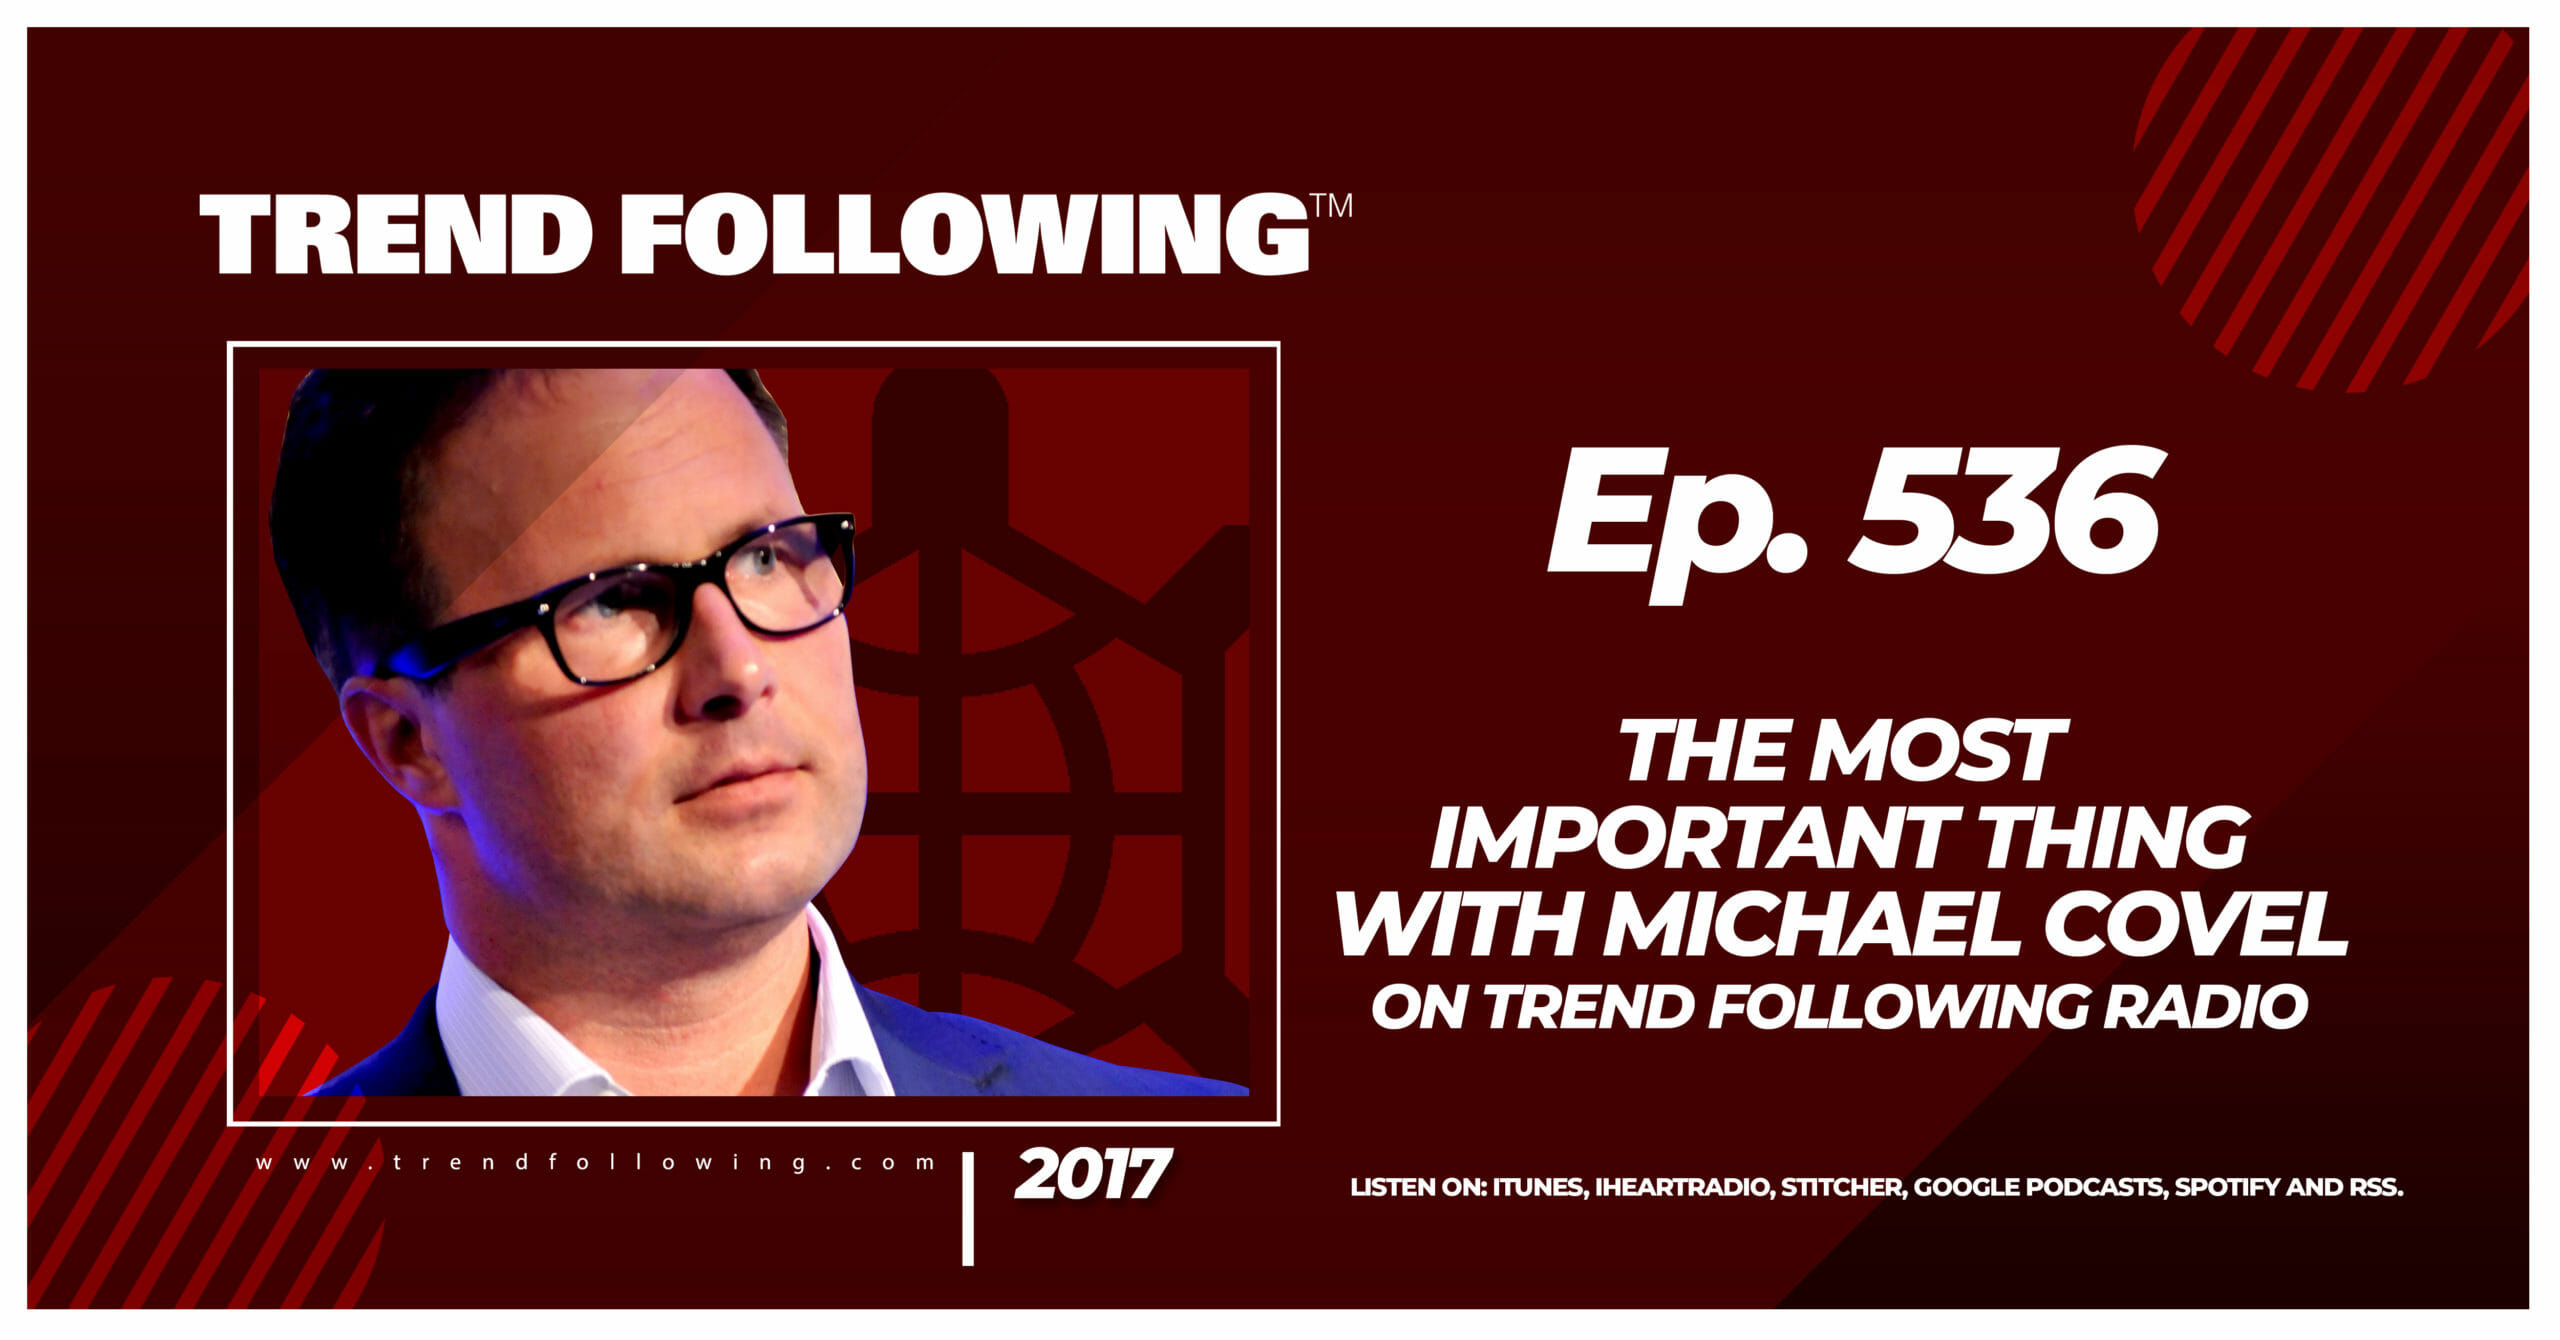 The Most Important Thing with Michael Covel on Trend Following Radio